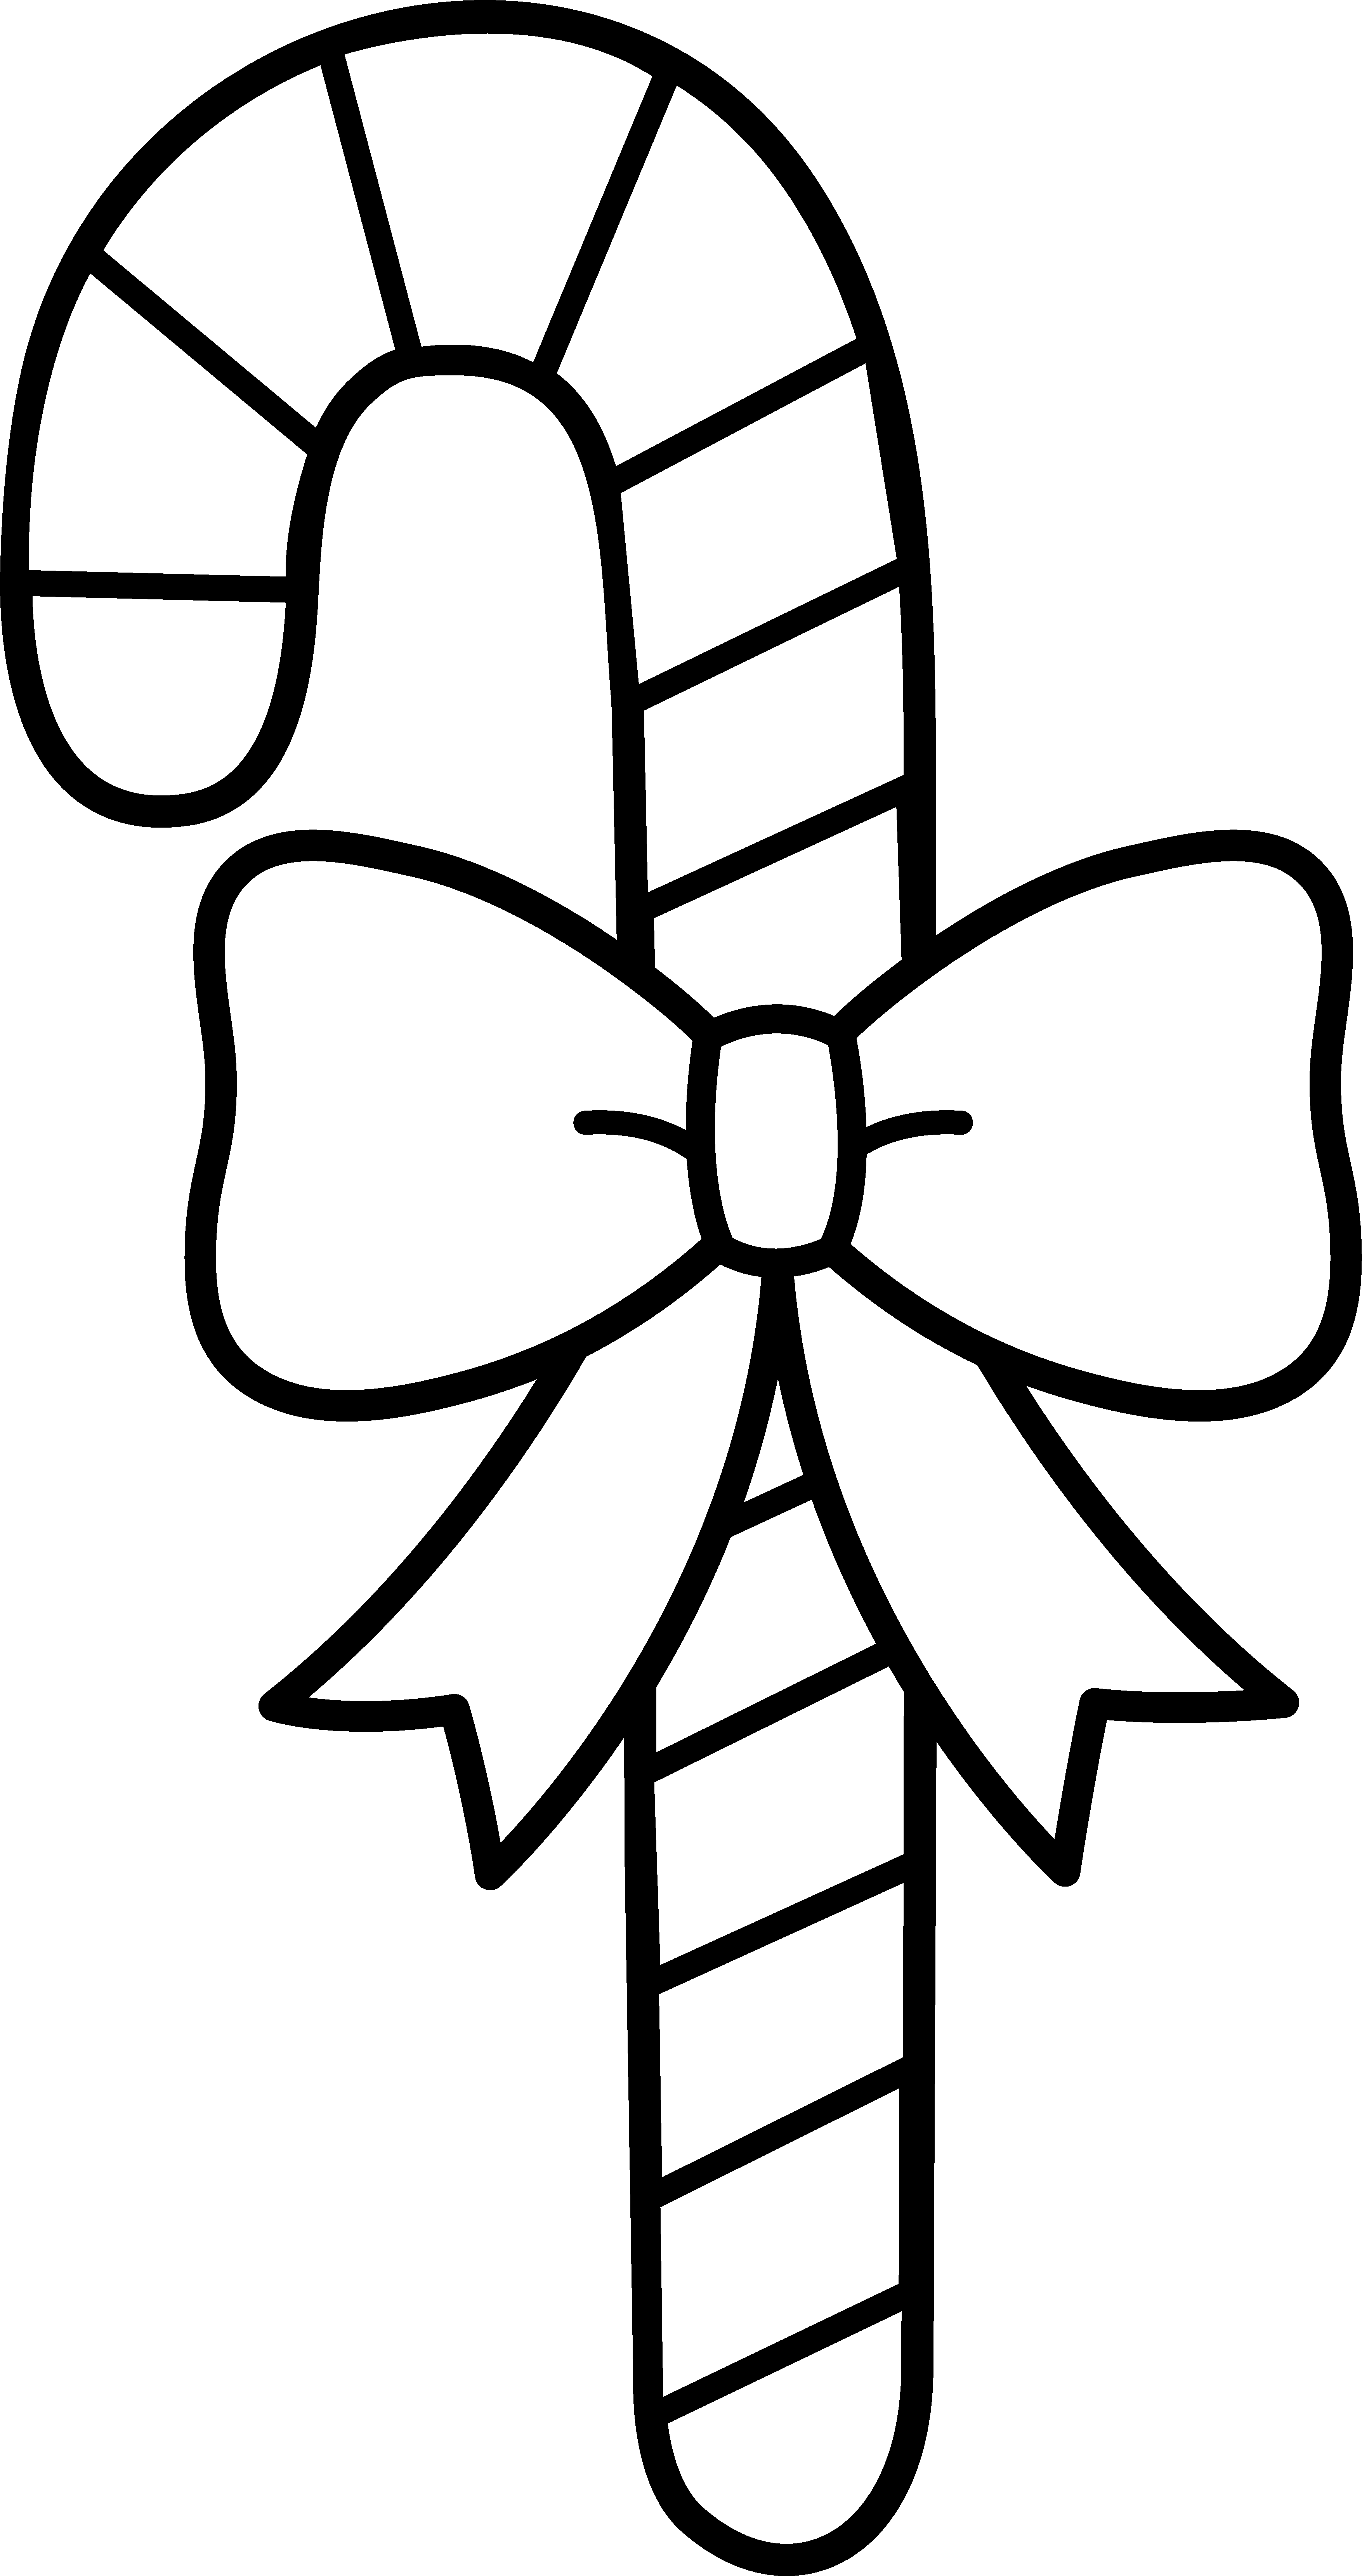 Working clipart black and white. Candy cane with bow